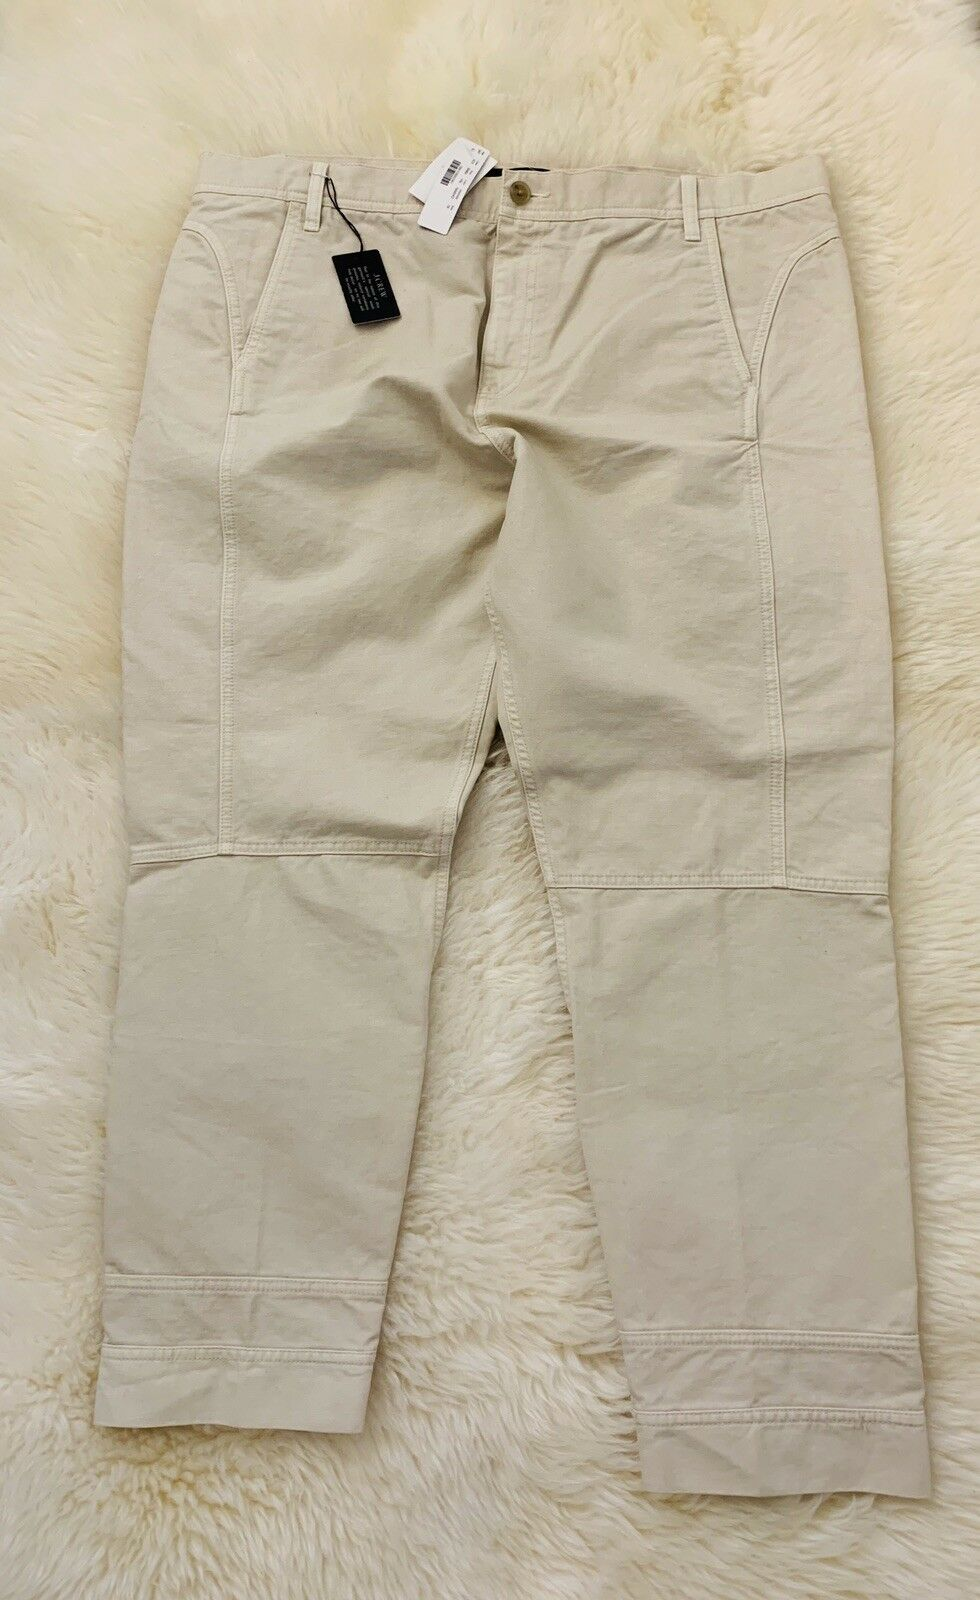 NWT J.Crew Seamed Military Pants Trouser Cotton Ivory Size 16 New